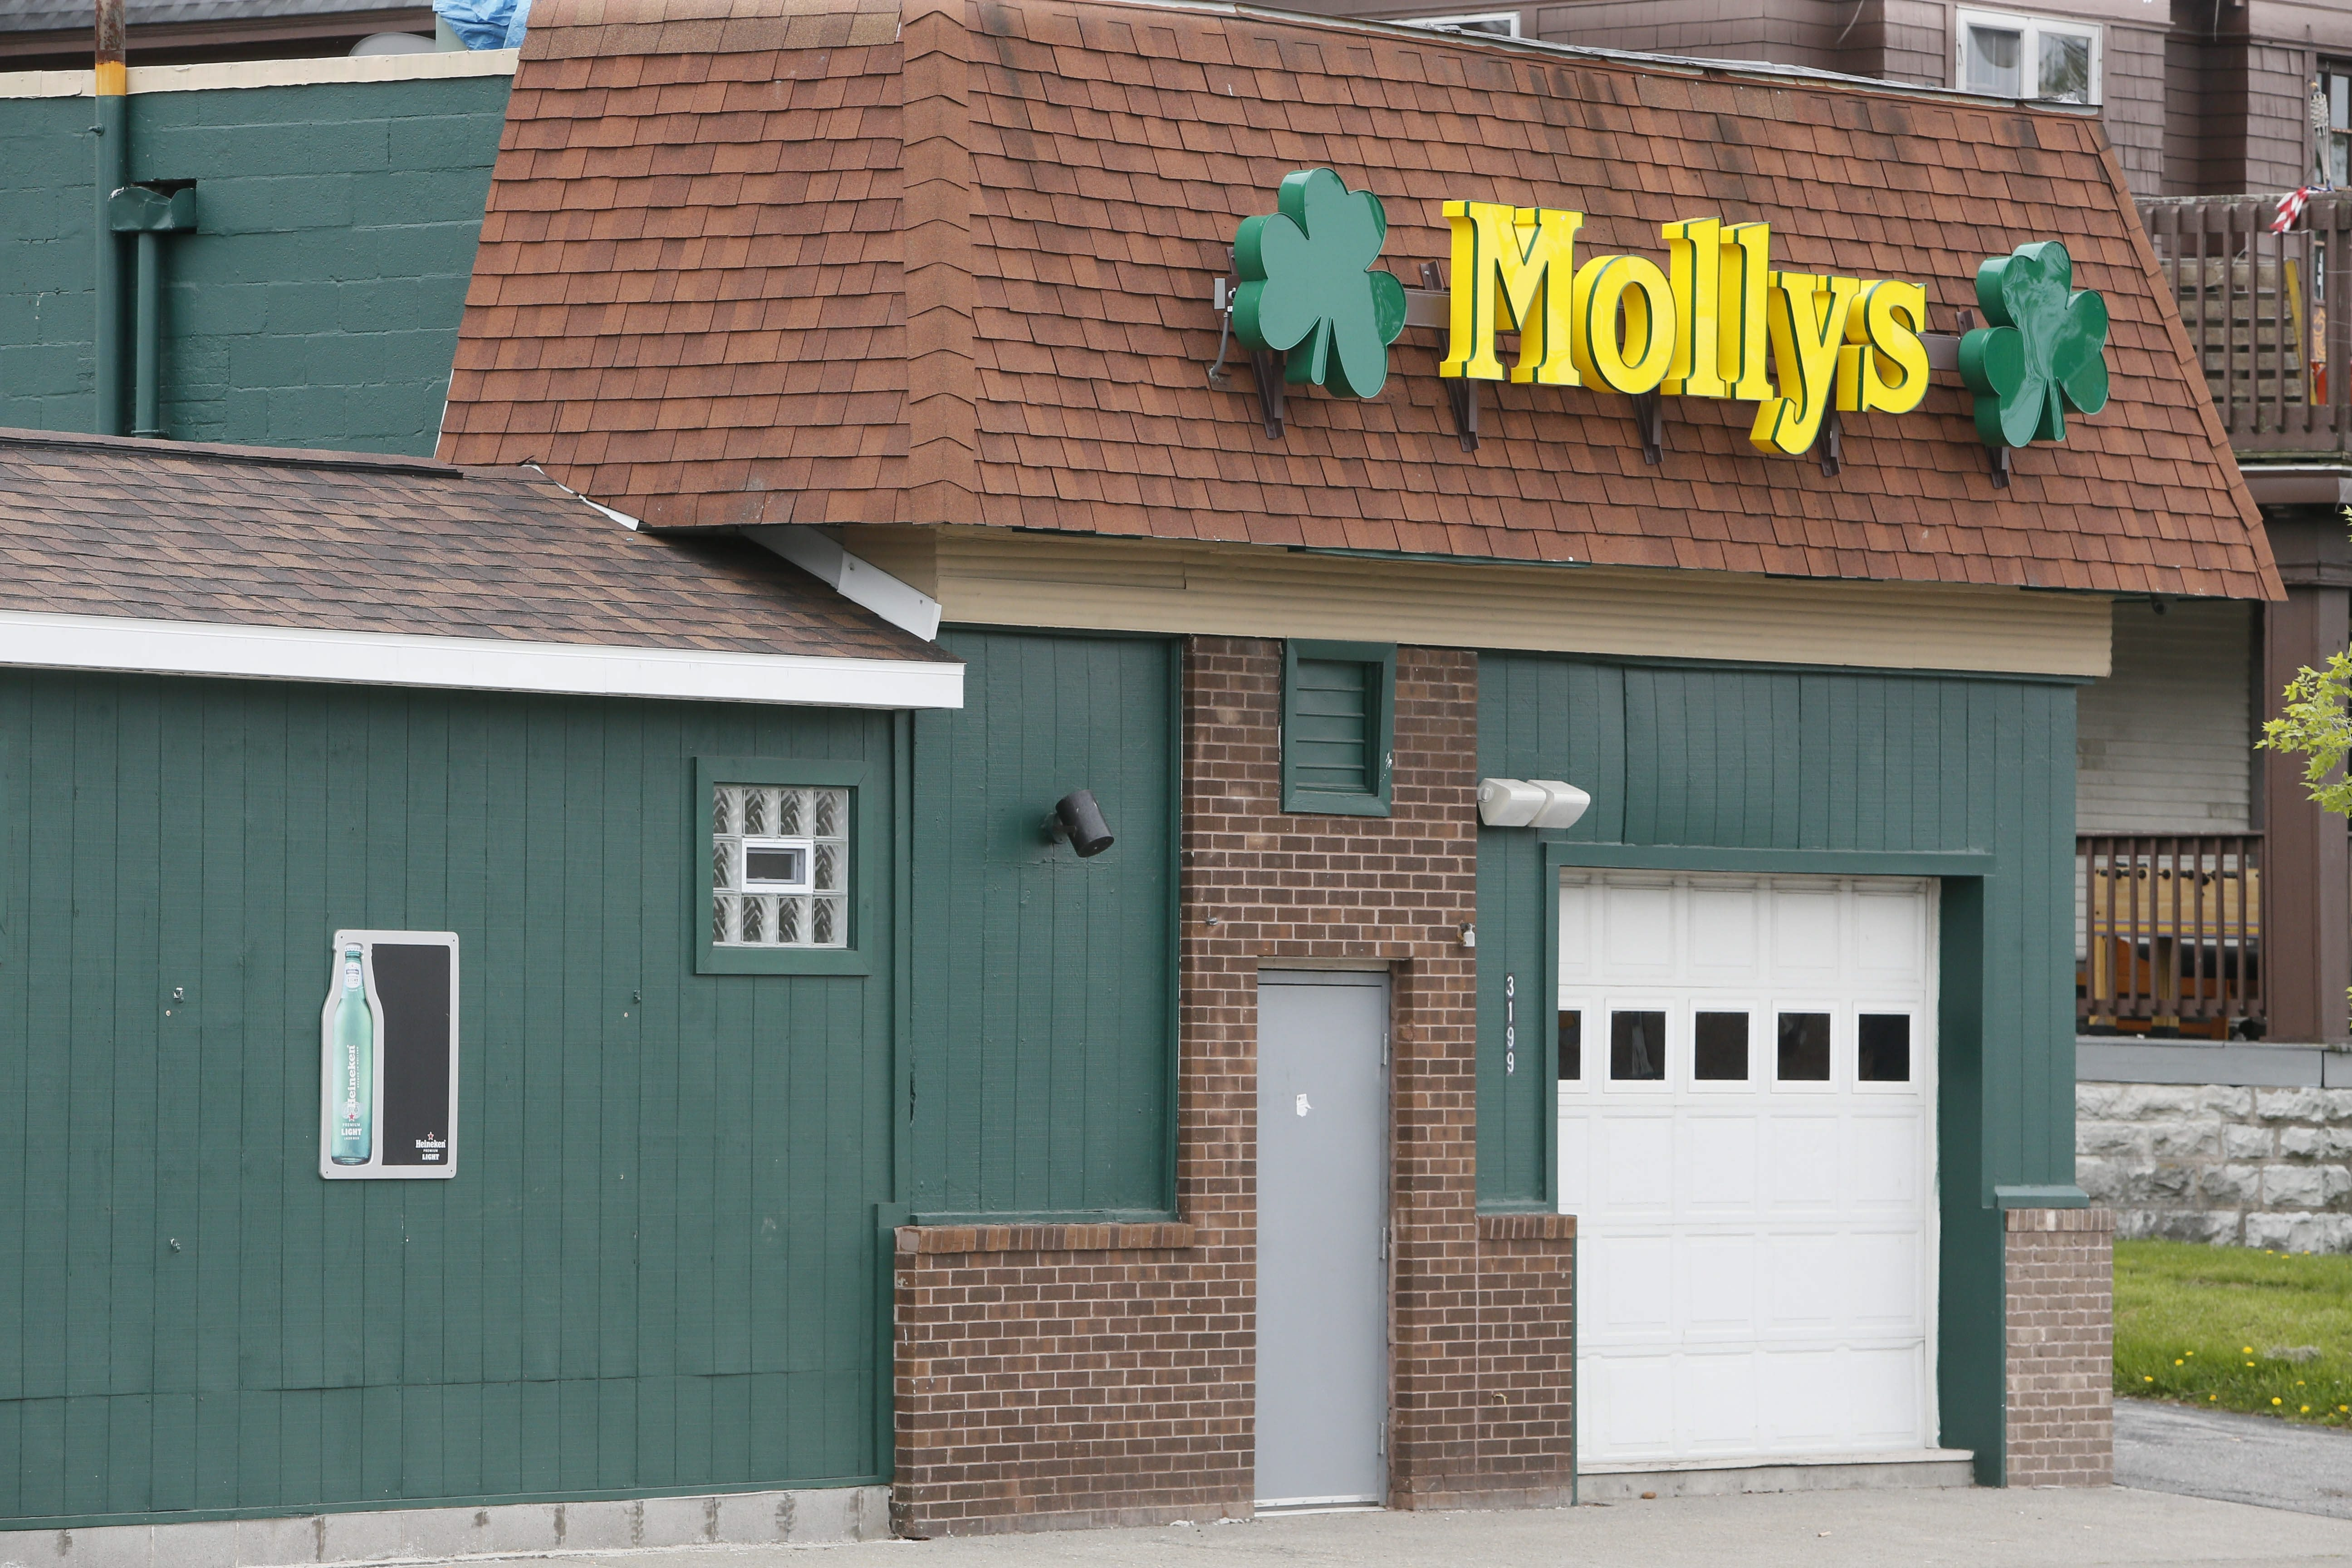 Mollys on Main Street, where an Air National Guardsman was left in a coma after being assaulted in May. He died Thursday. (Buffalo News)